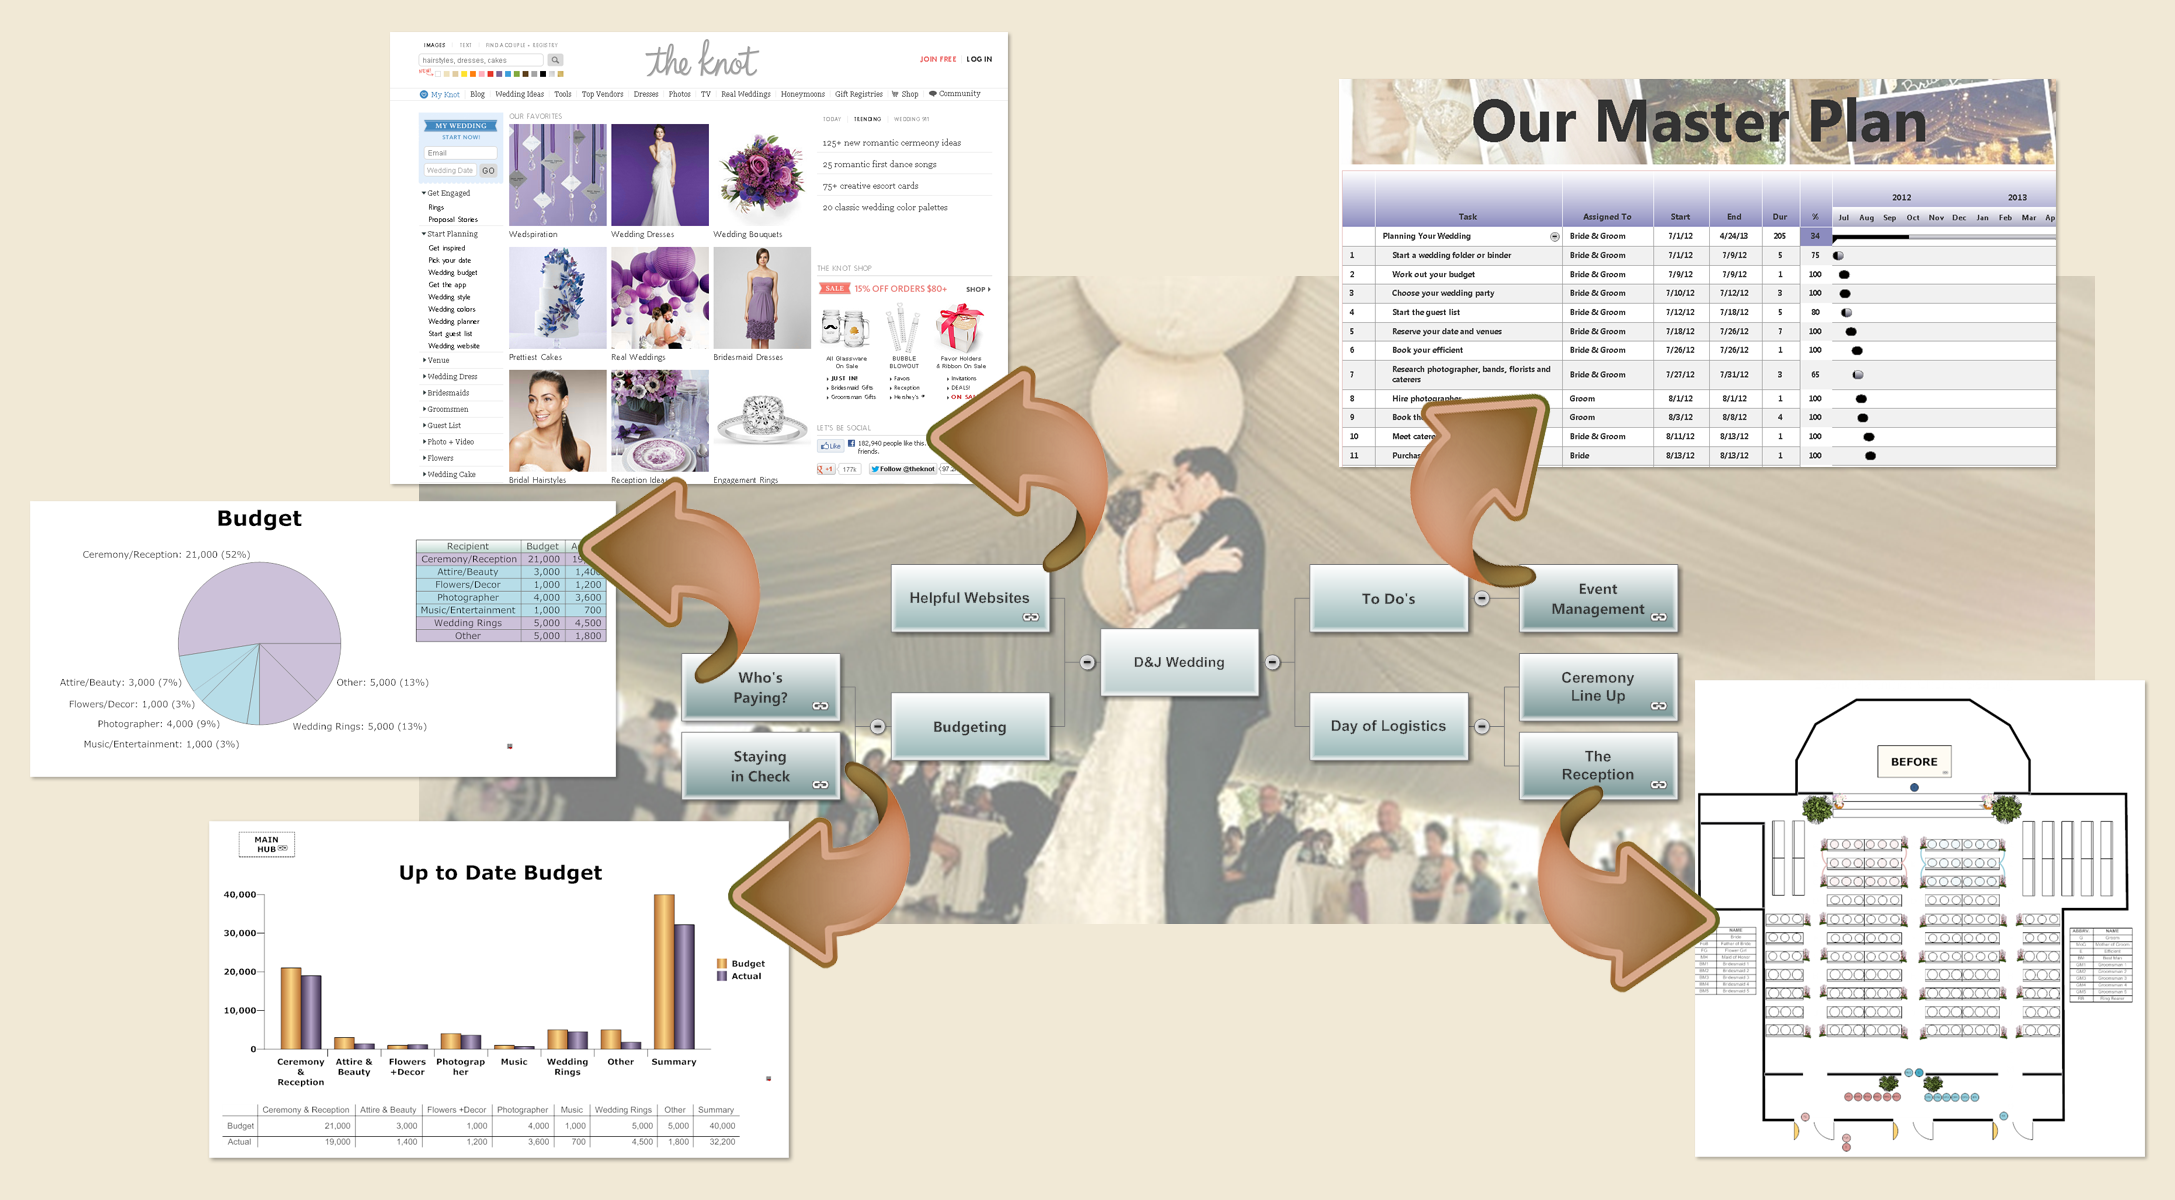 banquet planning software   make plans for banquets  amp  special eventsbanquet plan   master hub